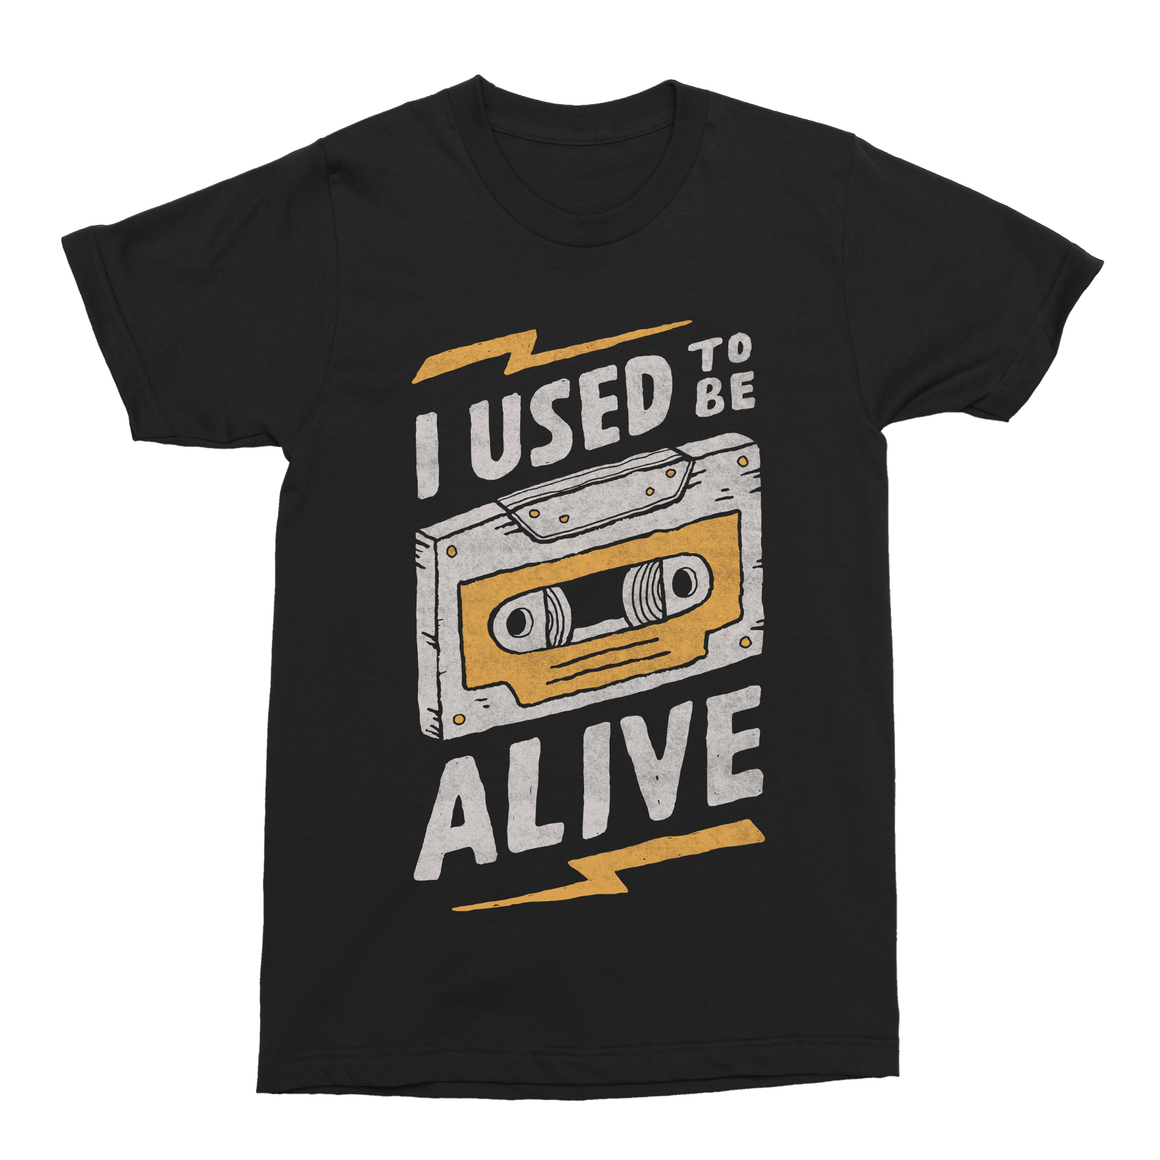 Alive Men's T-Shirt-Curartee